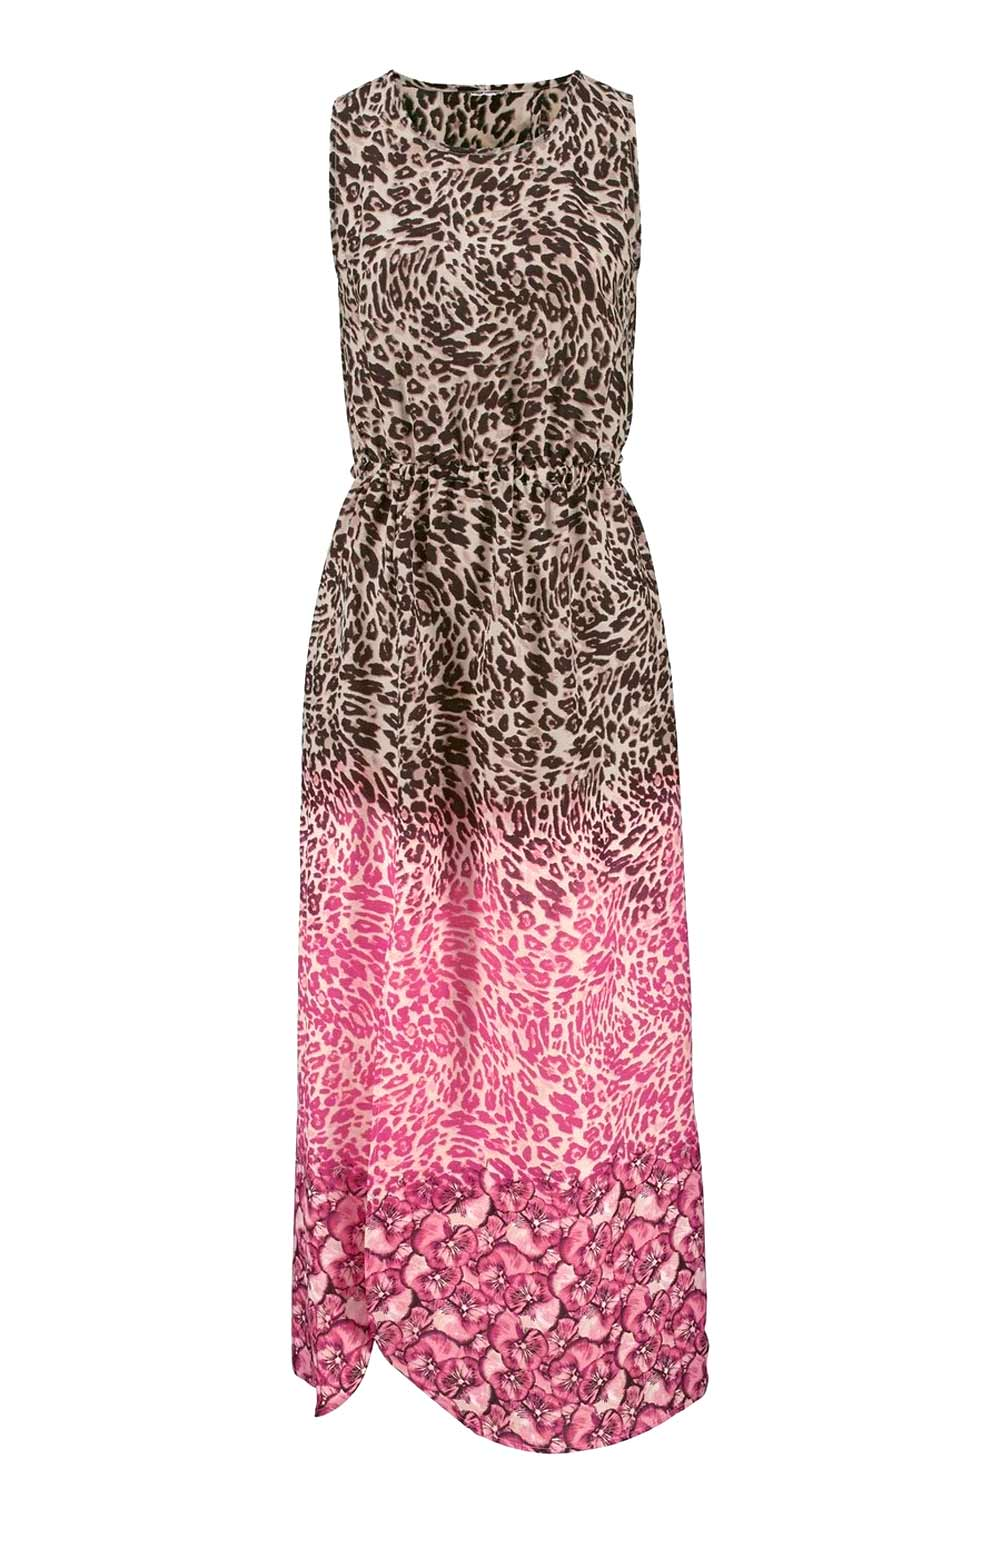 Vivance Collection Maxikleid, sand-taupe-pink 639.154 missforty